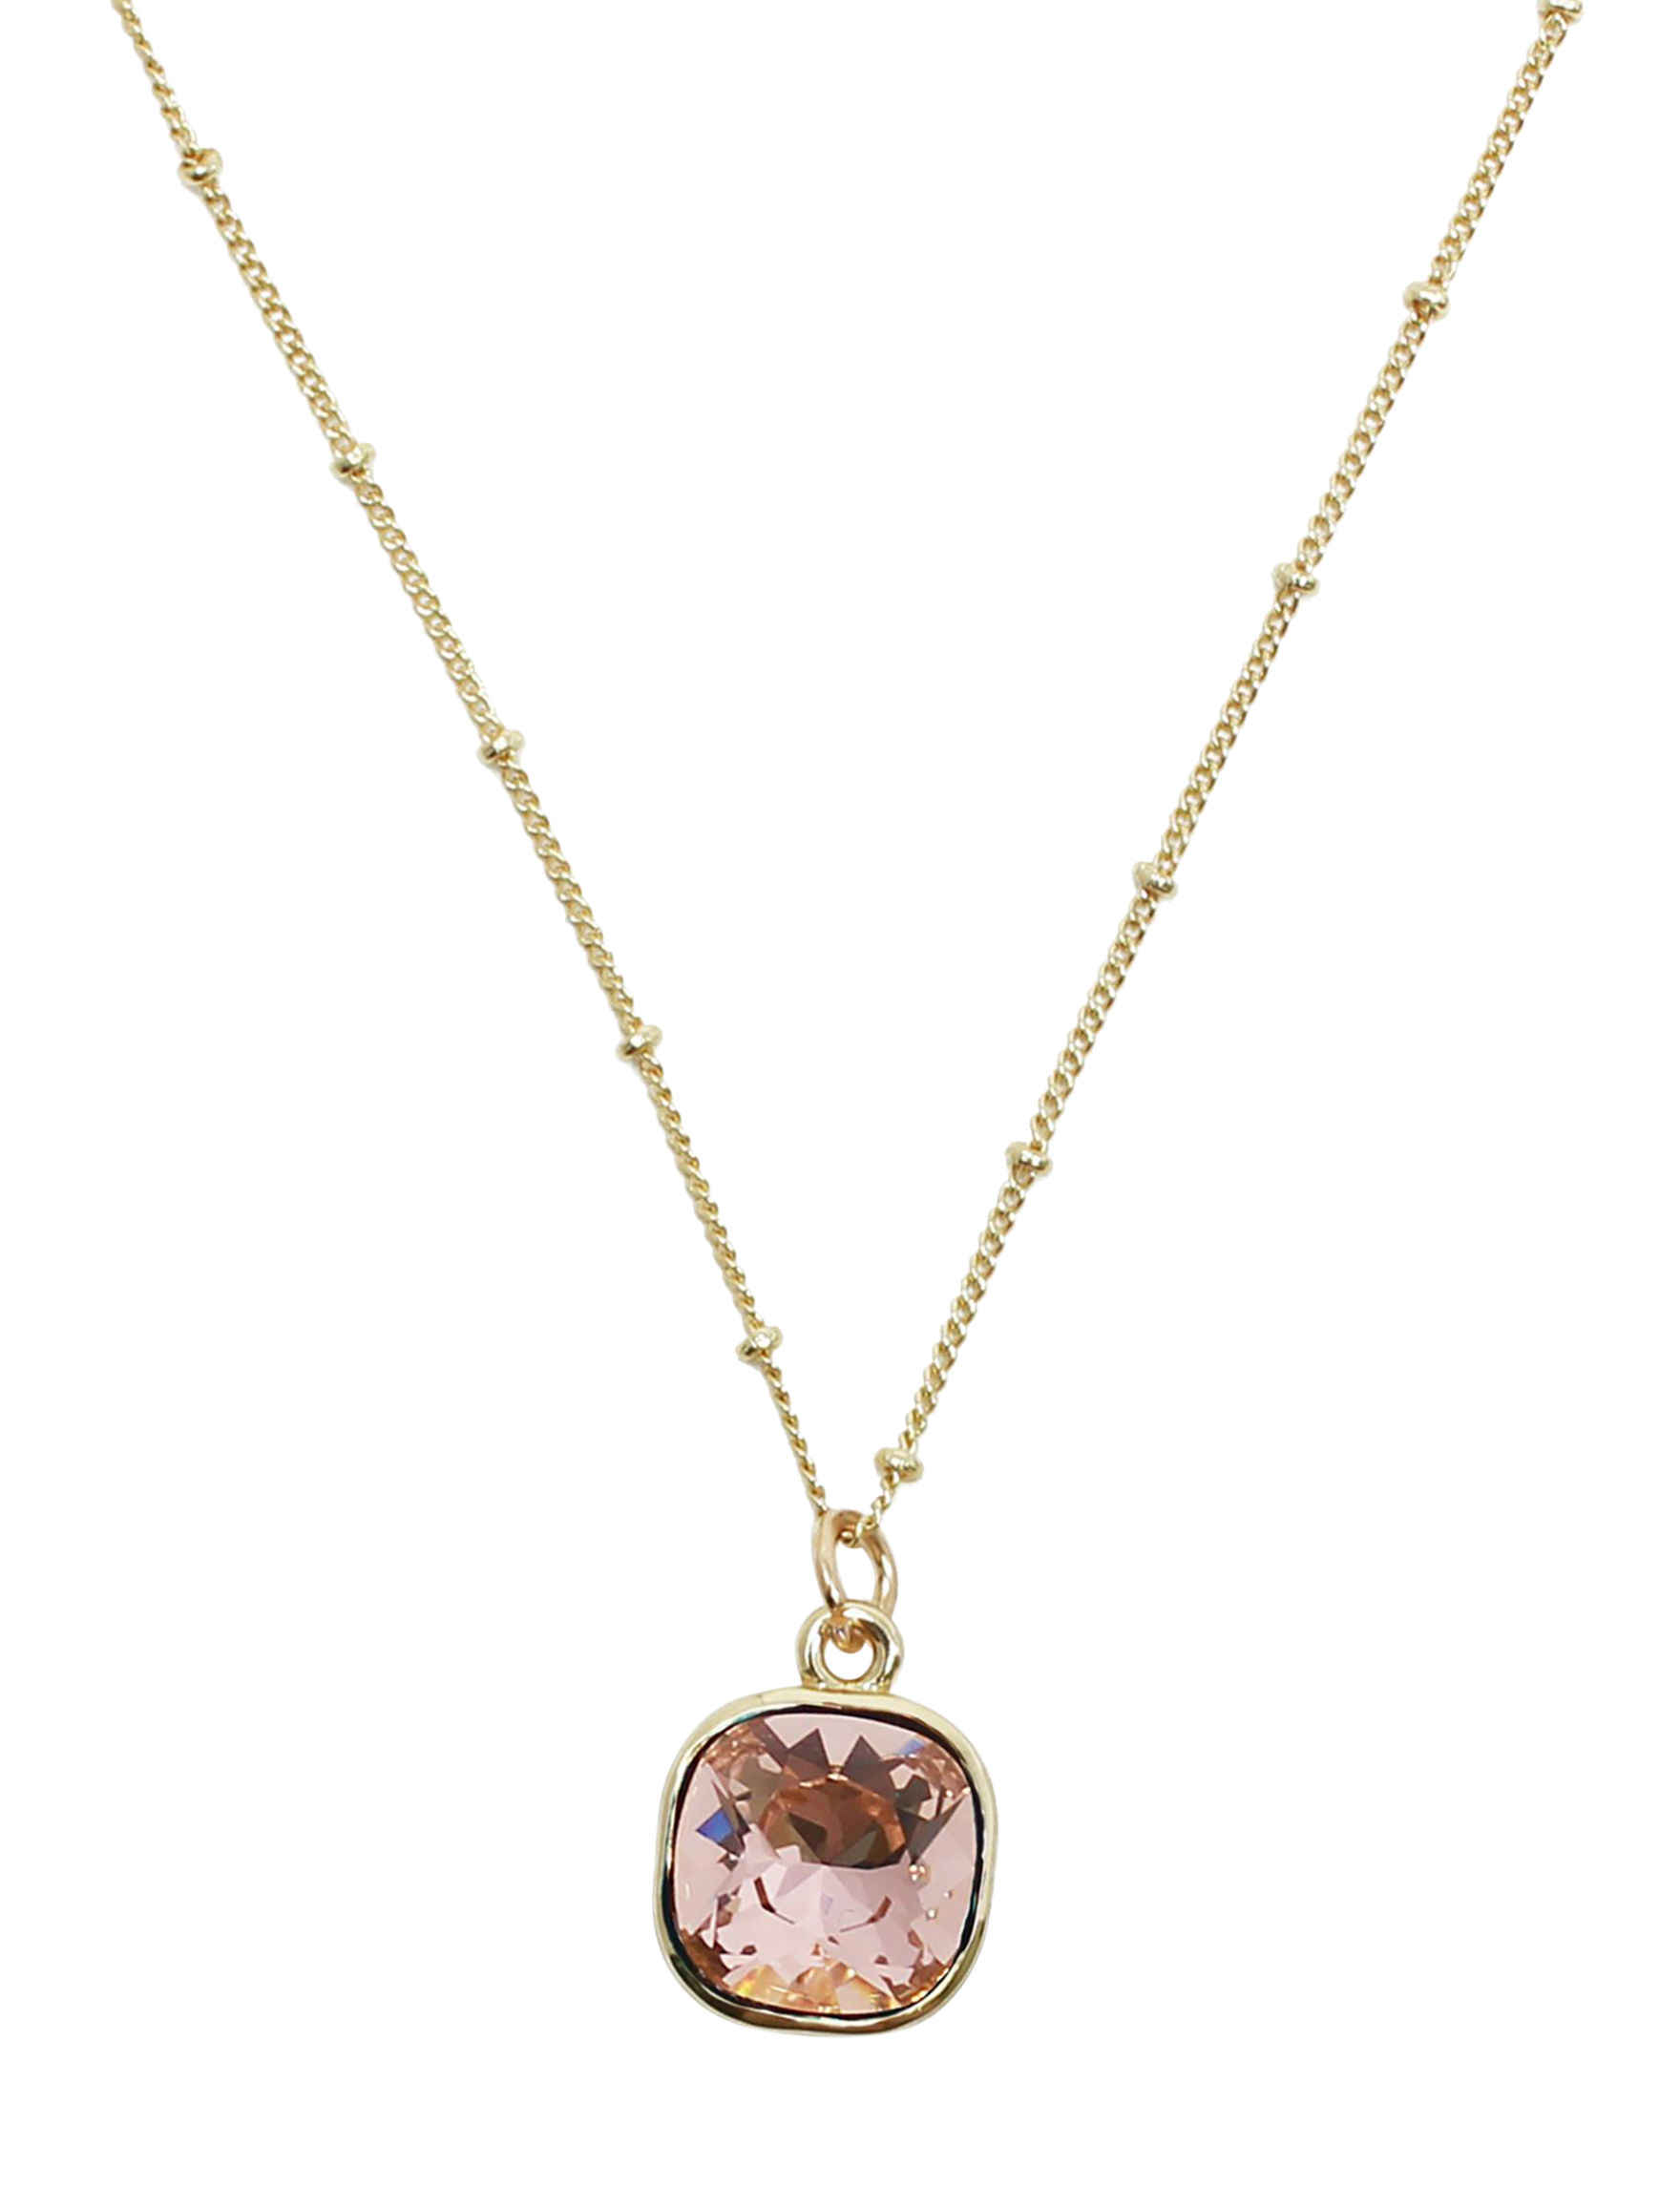 L & J Pink Crystal Necklaces & Pendants Fine Jewelry